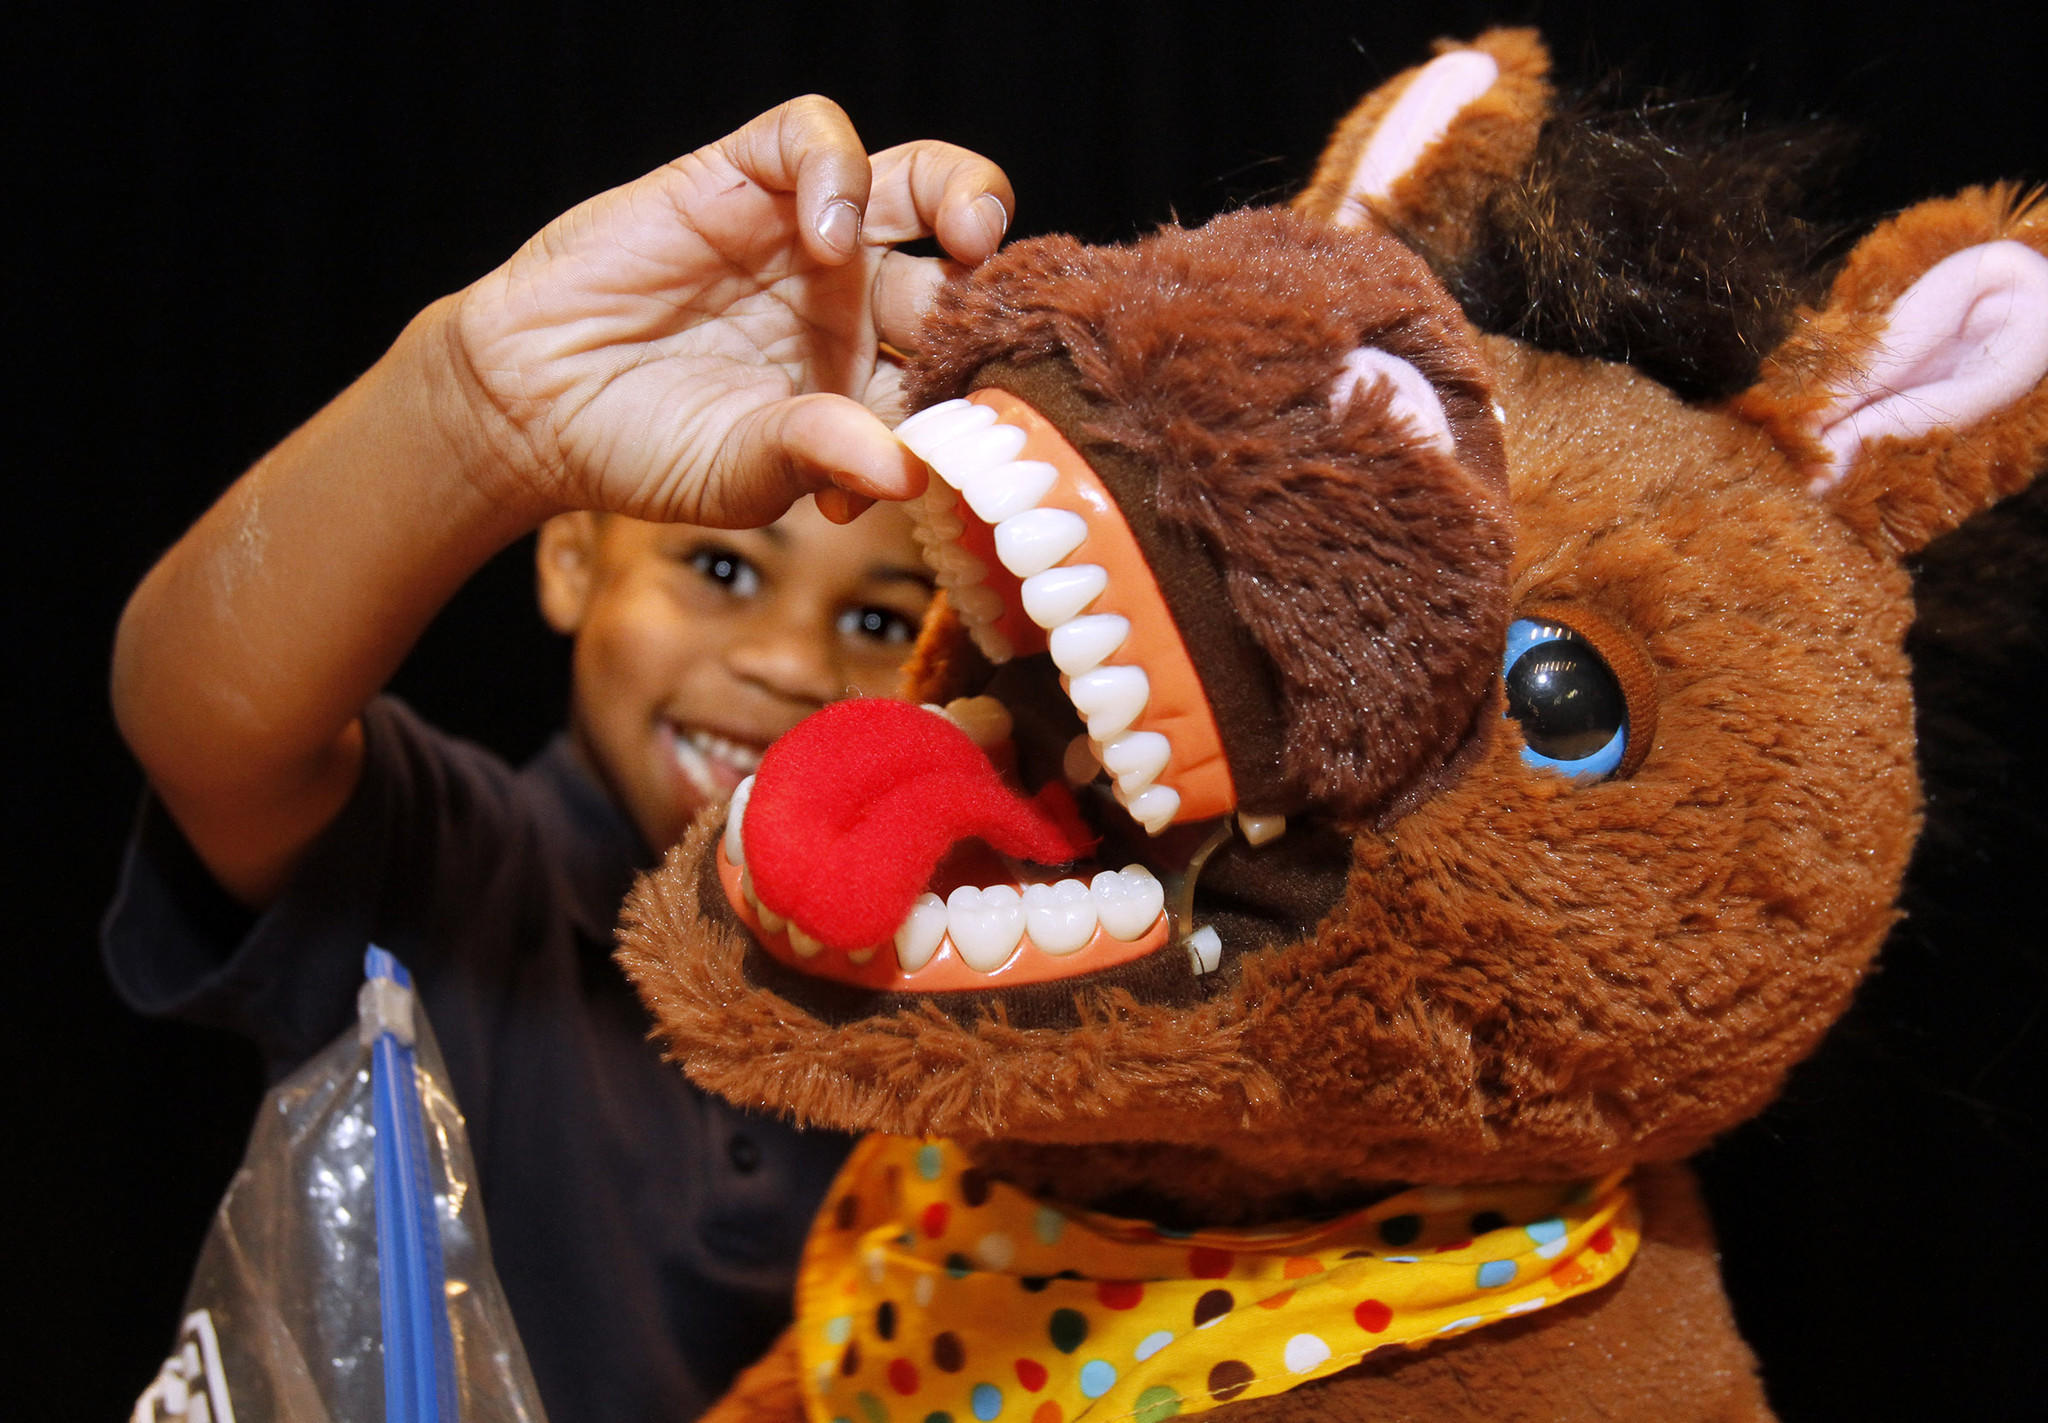 "Kindergartener Jamaal Bradford, 6, looks at a stuffed horse's teeth during the ""Give Kids A Smile"" day dental clinic at George Washington Elementary School in Burbank on Tuesday, Feb. 11, 2014. The event was sponsored in part by Henry Shein, Colgate, the American Dental Association and the Kids Community Dental Clinic."